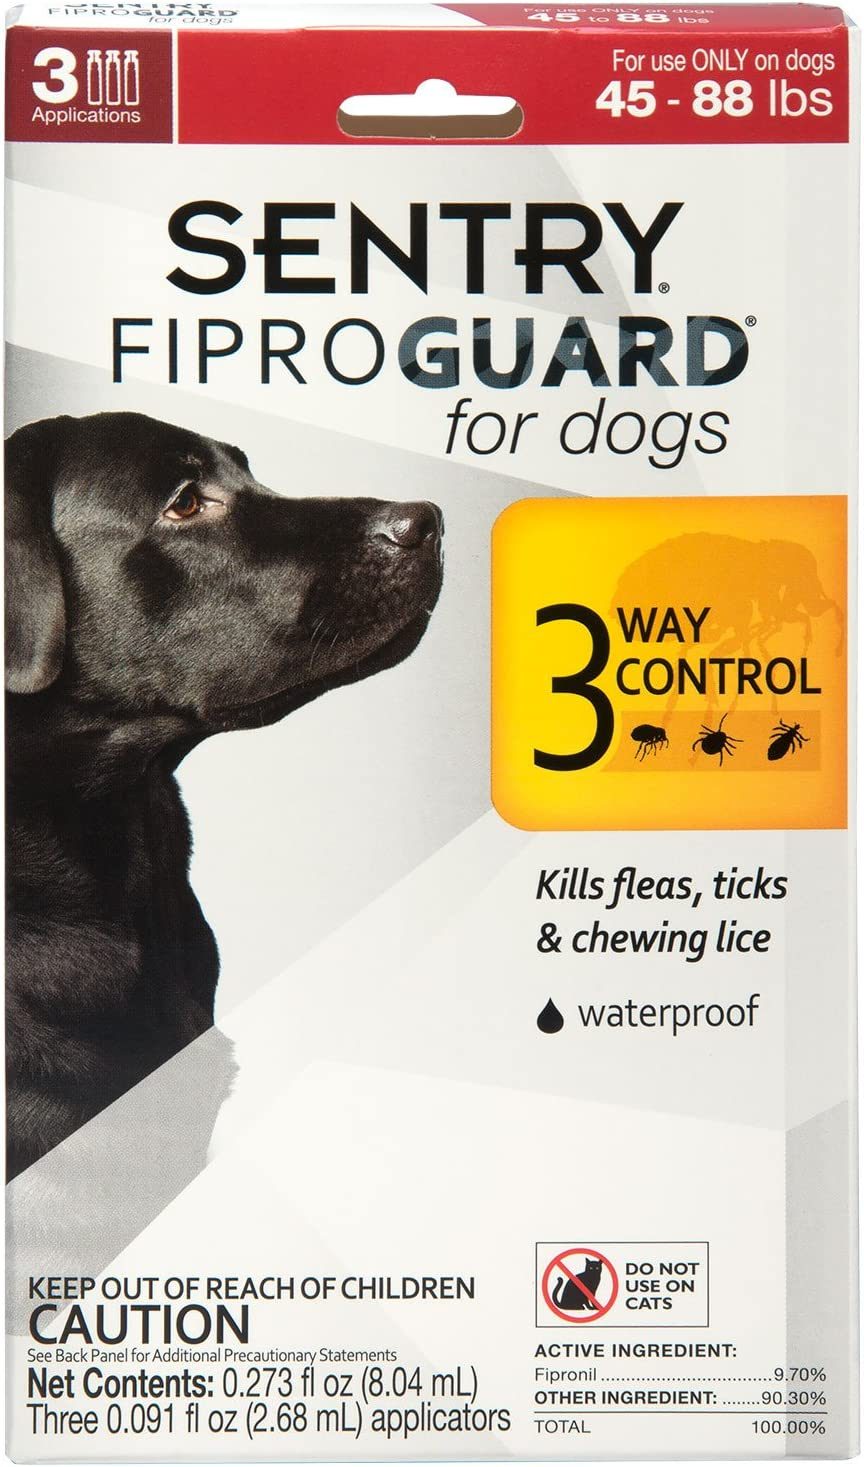 SENTRY PET CARE National products Atlanta Mall Fiproguard for Dogs fo Flea Prevention and Tick